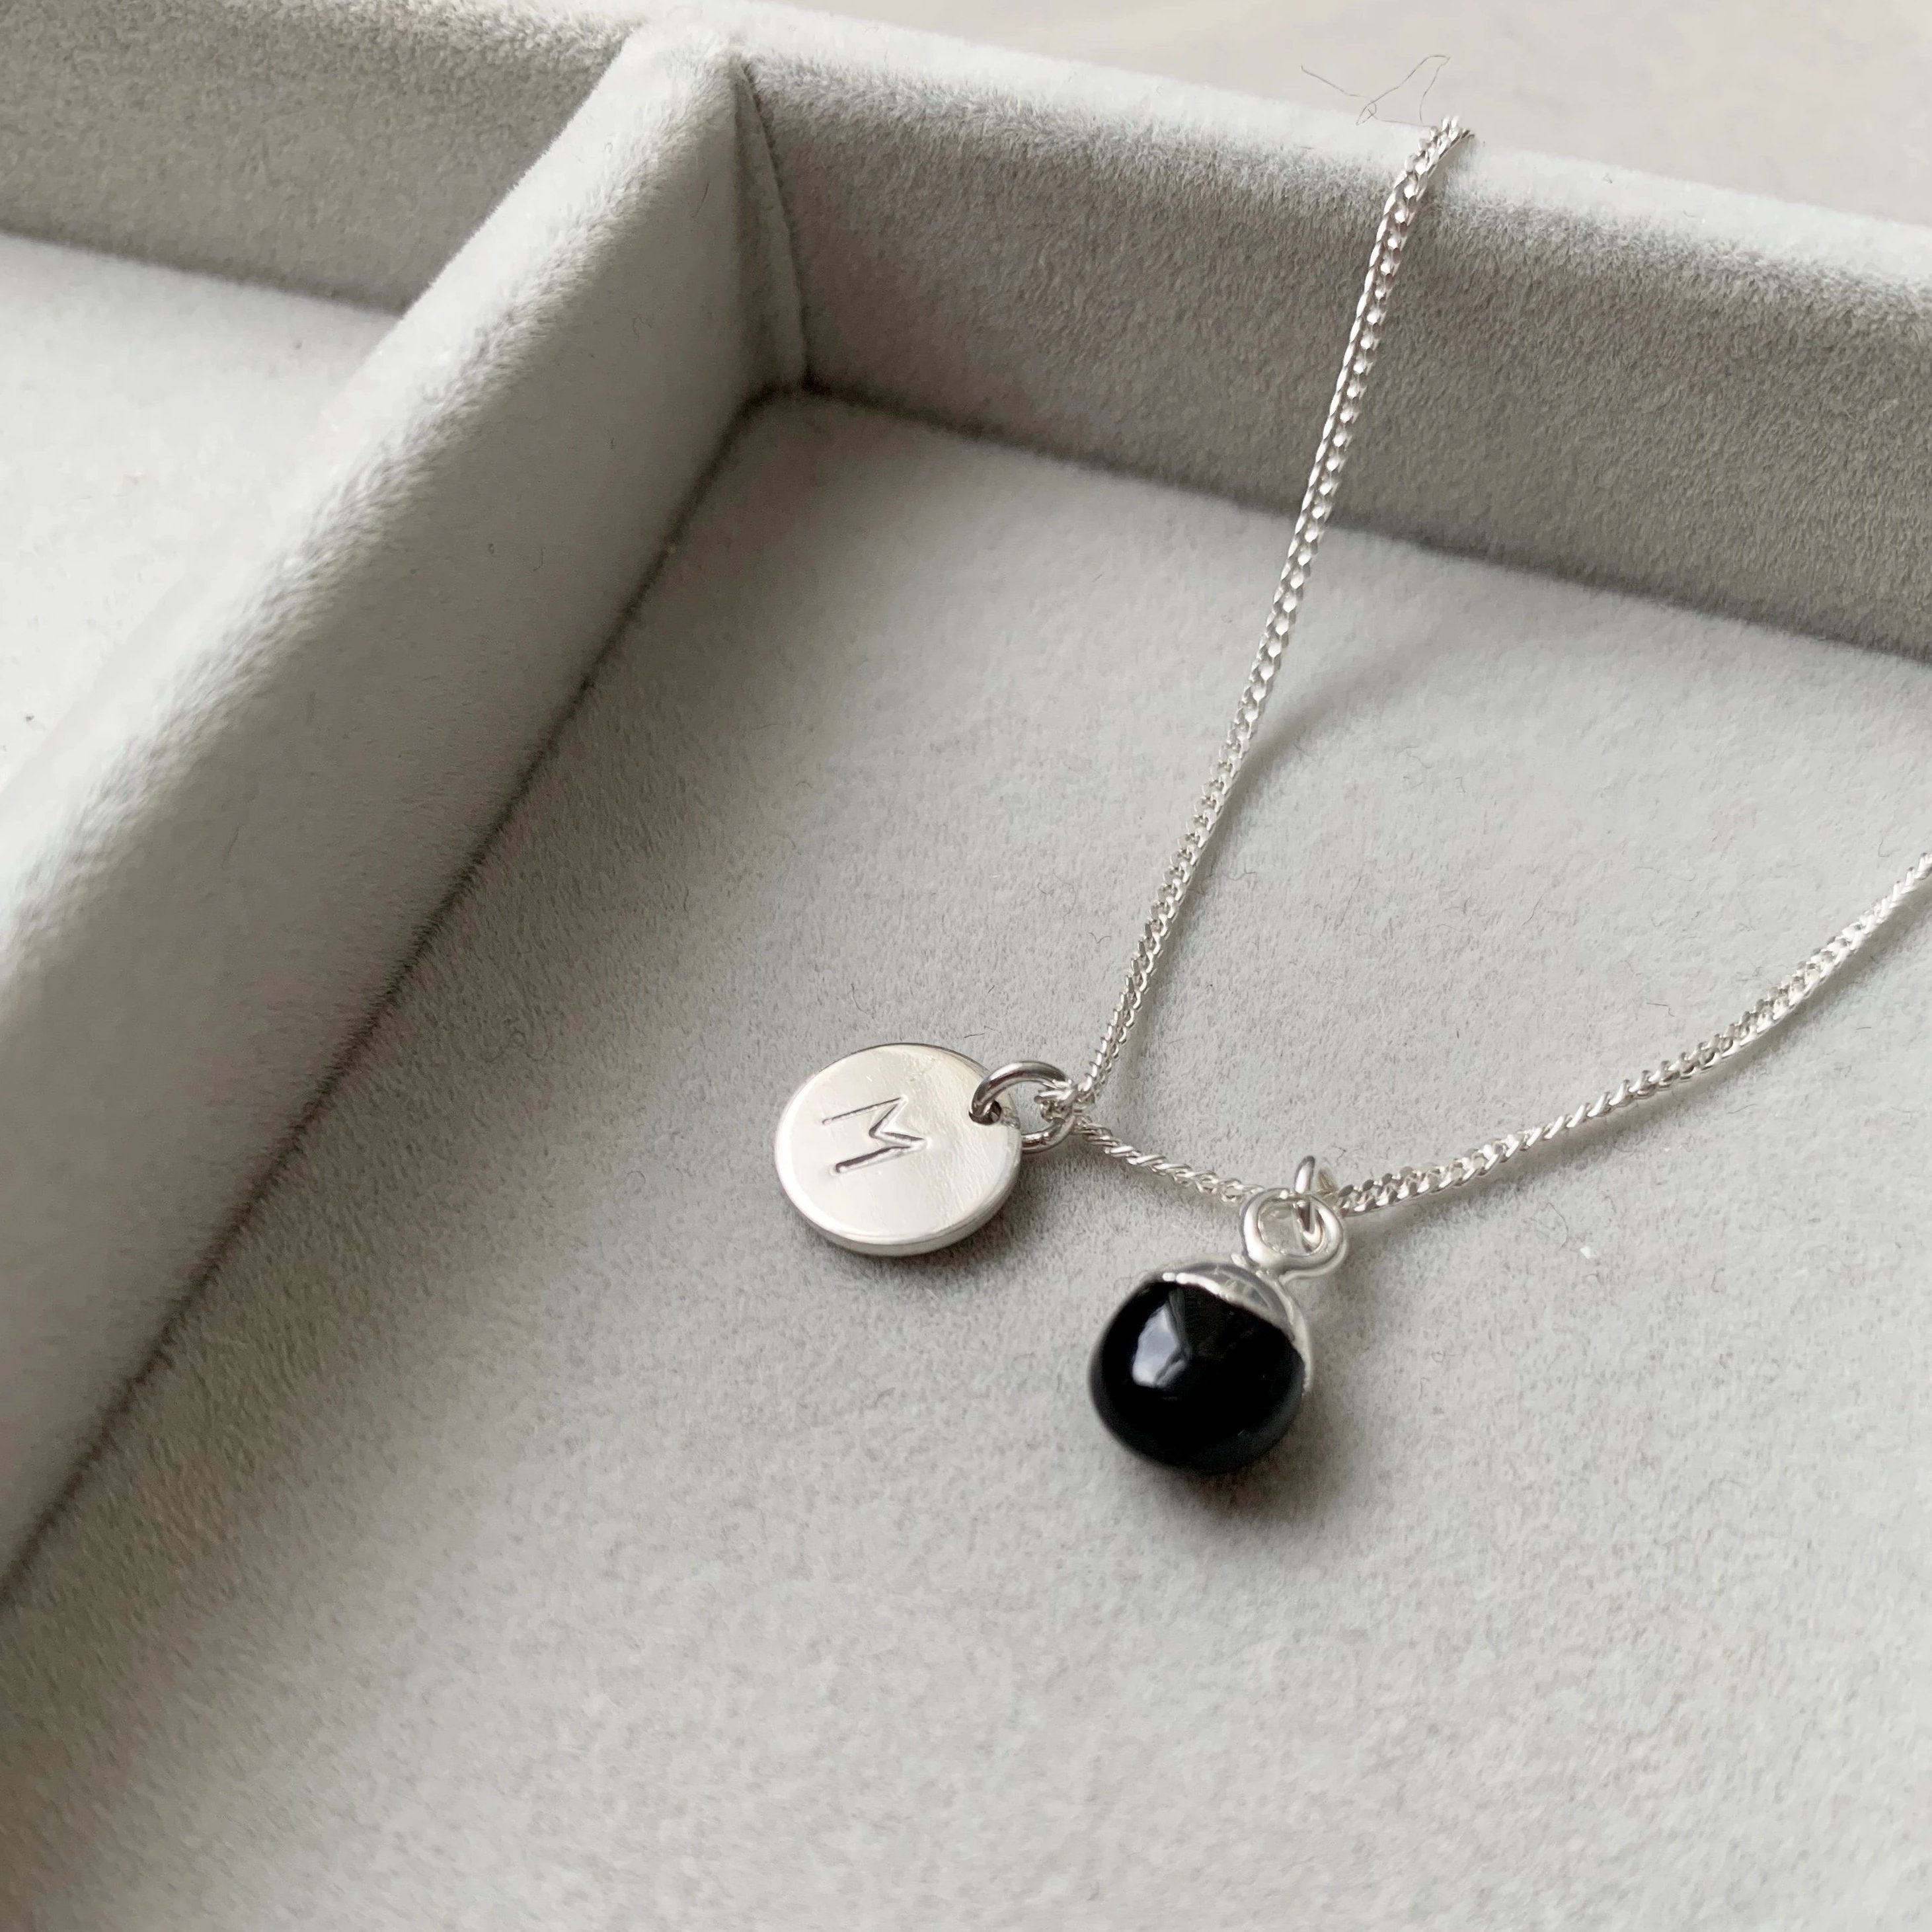 Tiny Tumbled Gemstone Necklace - Silver - Onyx (Strength) - Decadorn